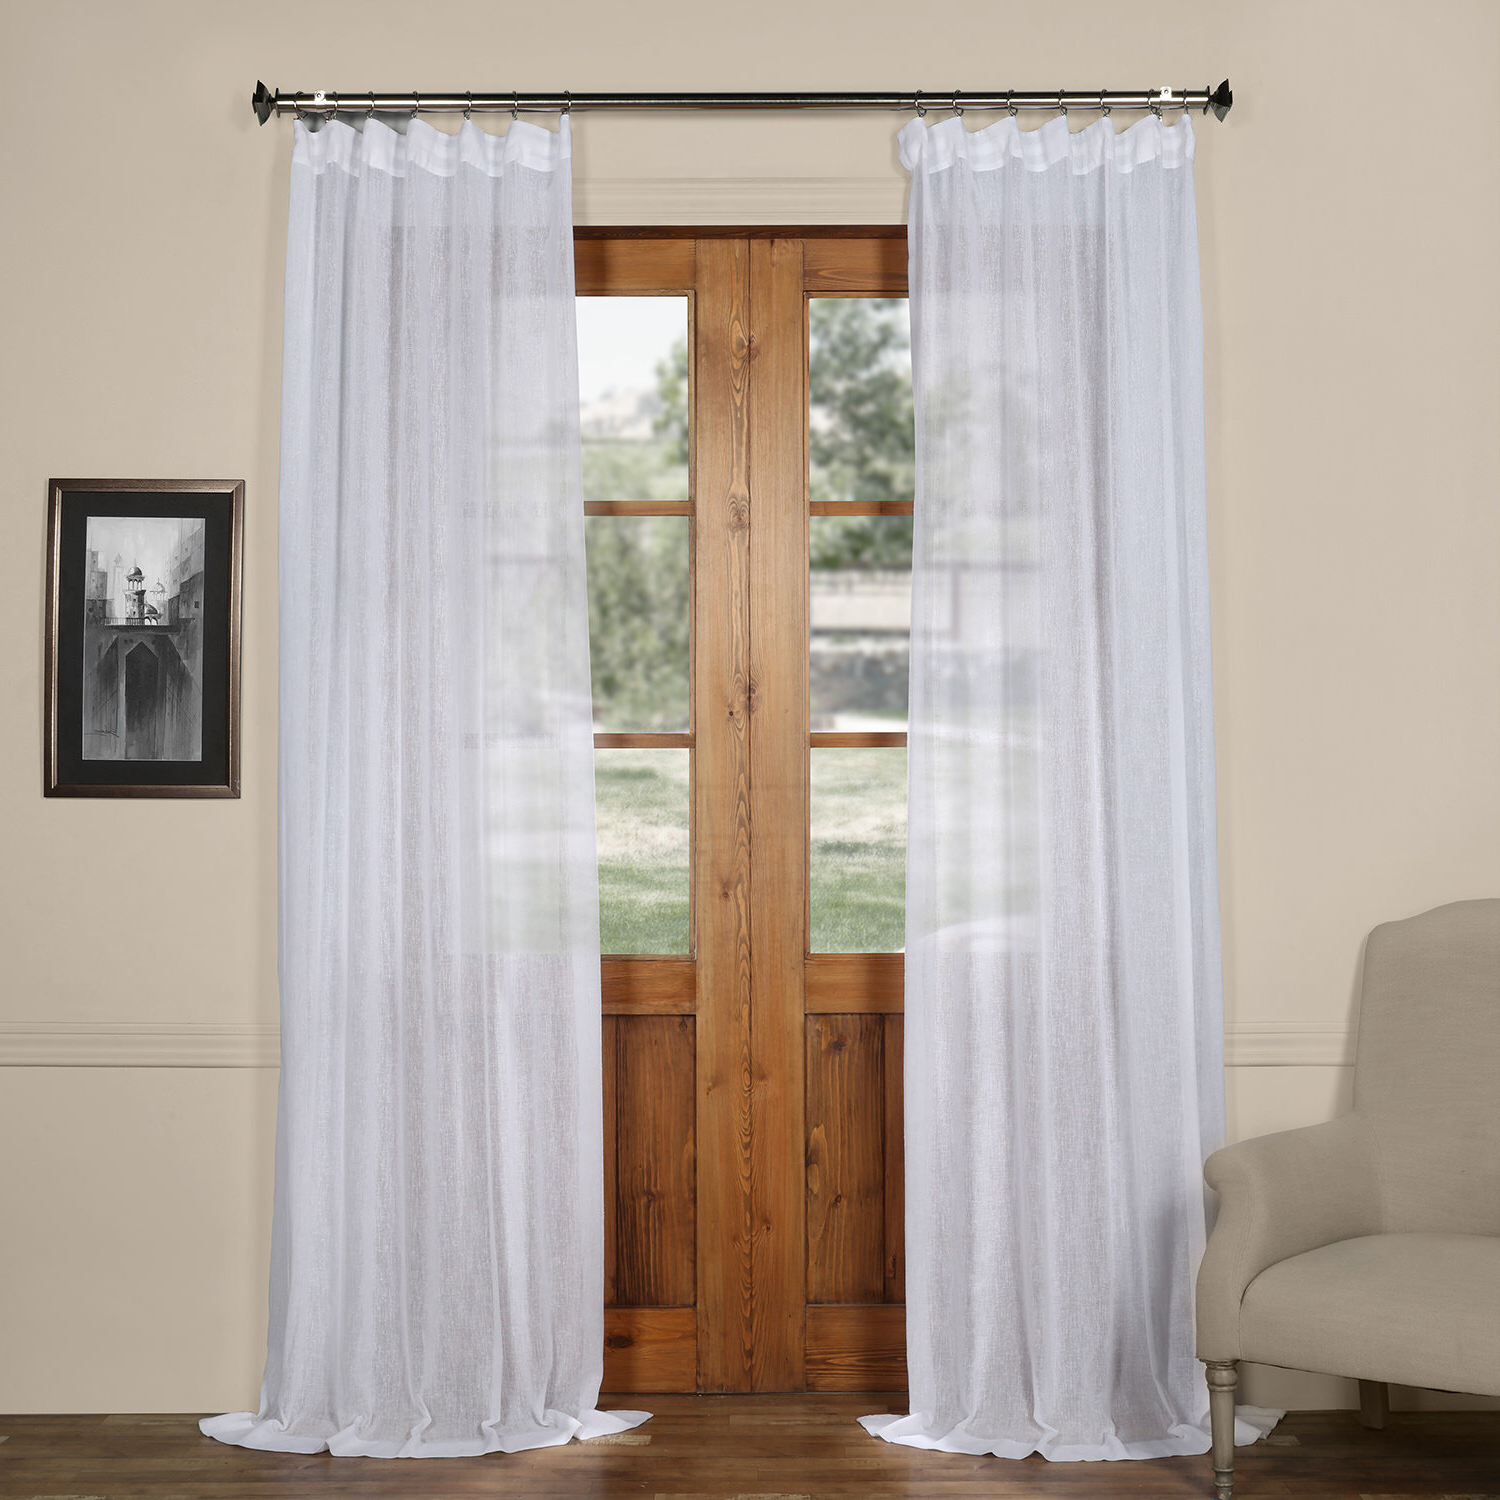 Preferred Bowley Solid Sheer Tab Top Single Curtain Panel In Tab Top Sheer Single Curtain Panels (View 5 of 20)